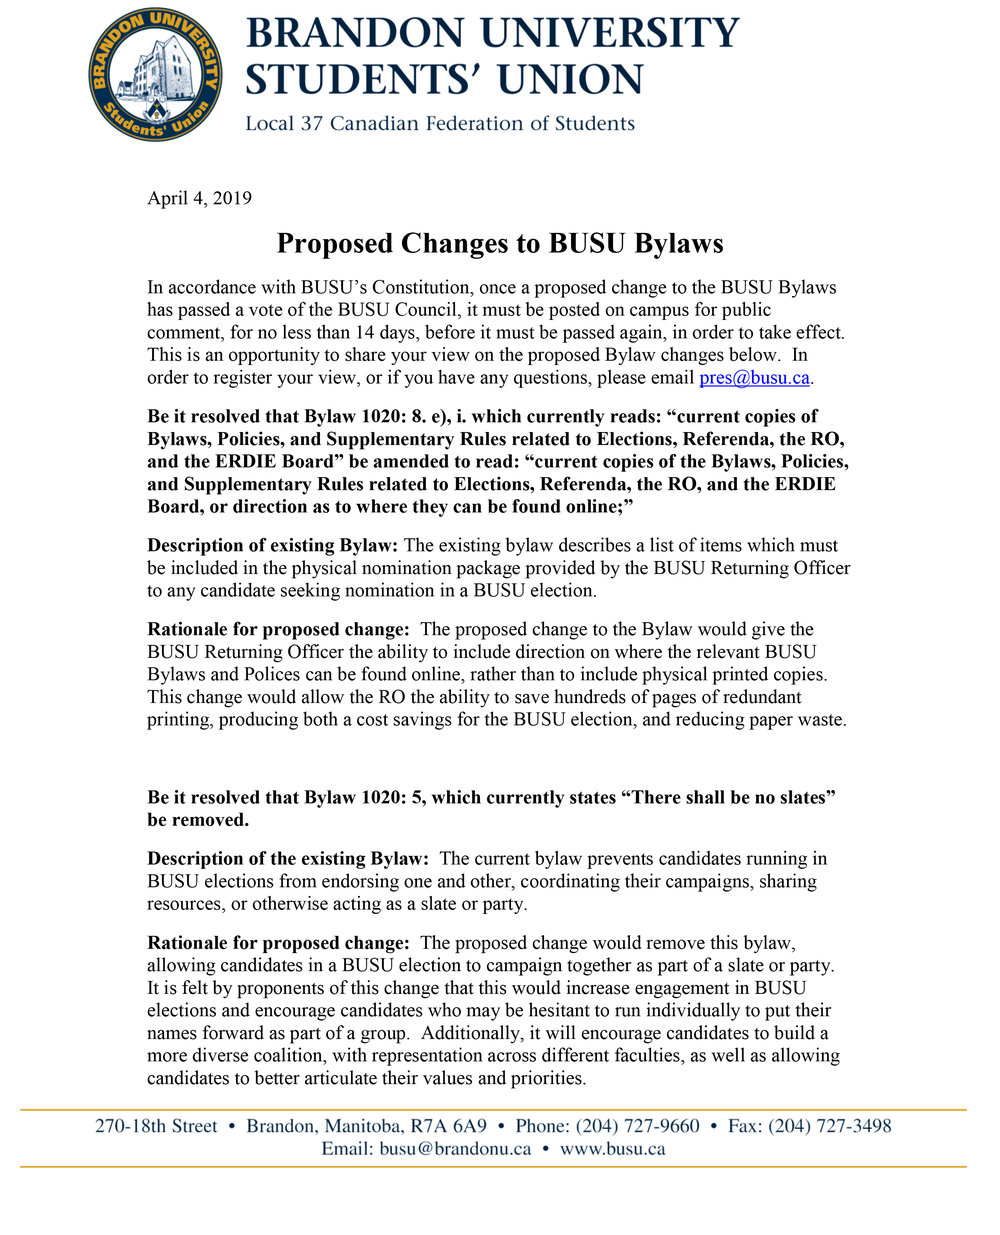 Proposed Changes to BUSU Bylaws.jpg